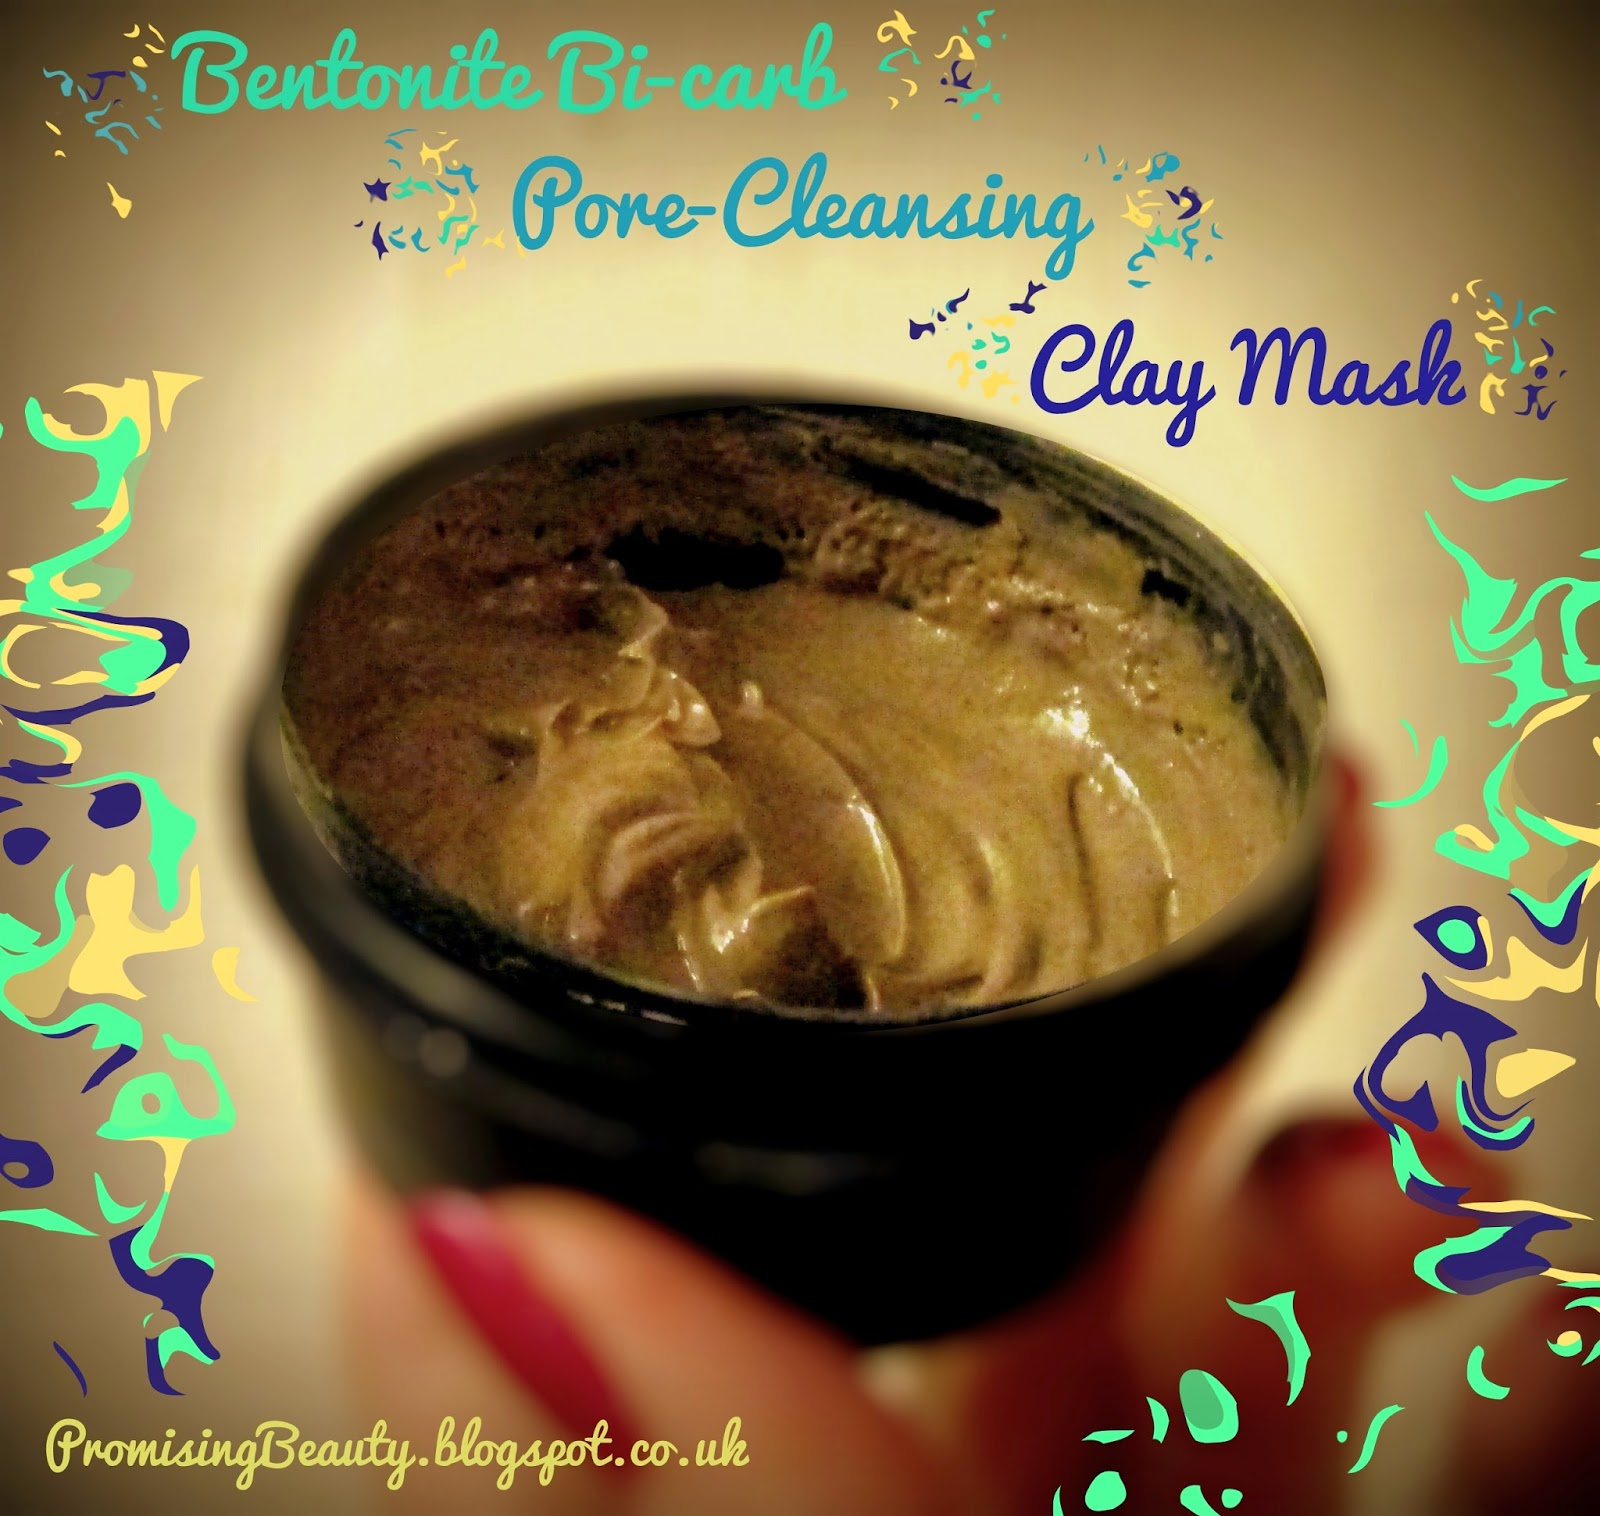 bentonite clay facemask. DIY deep cleansing mask for acne prone skin.